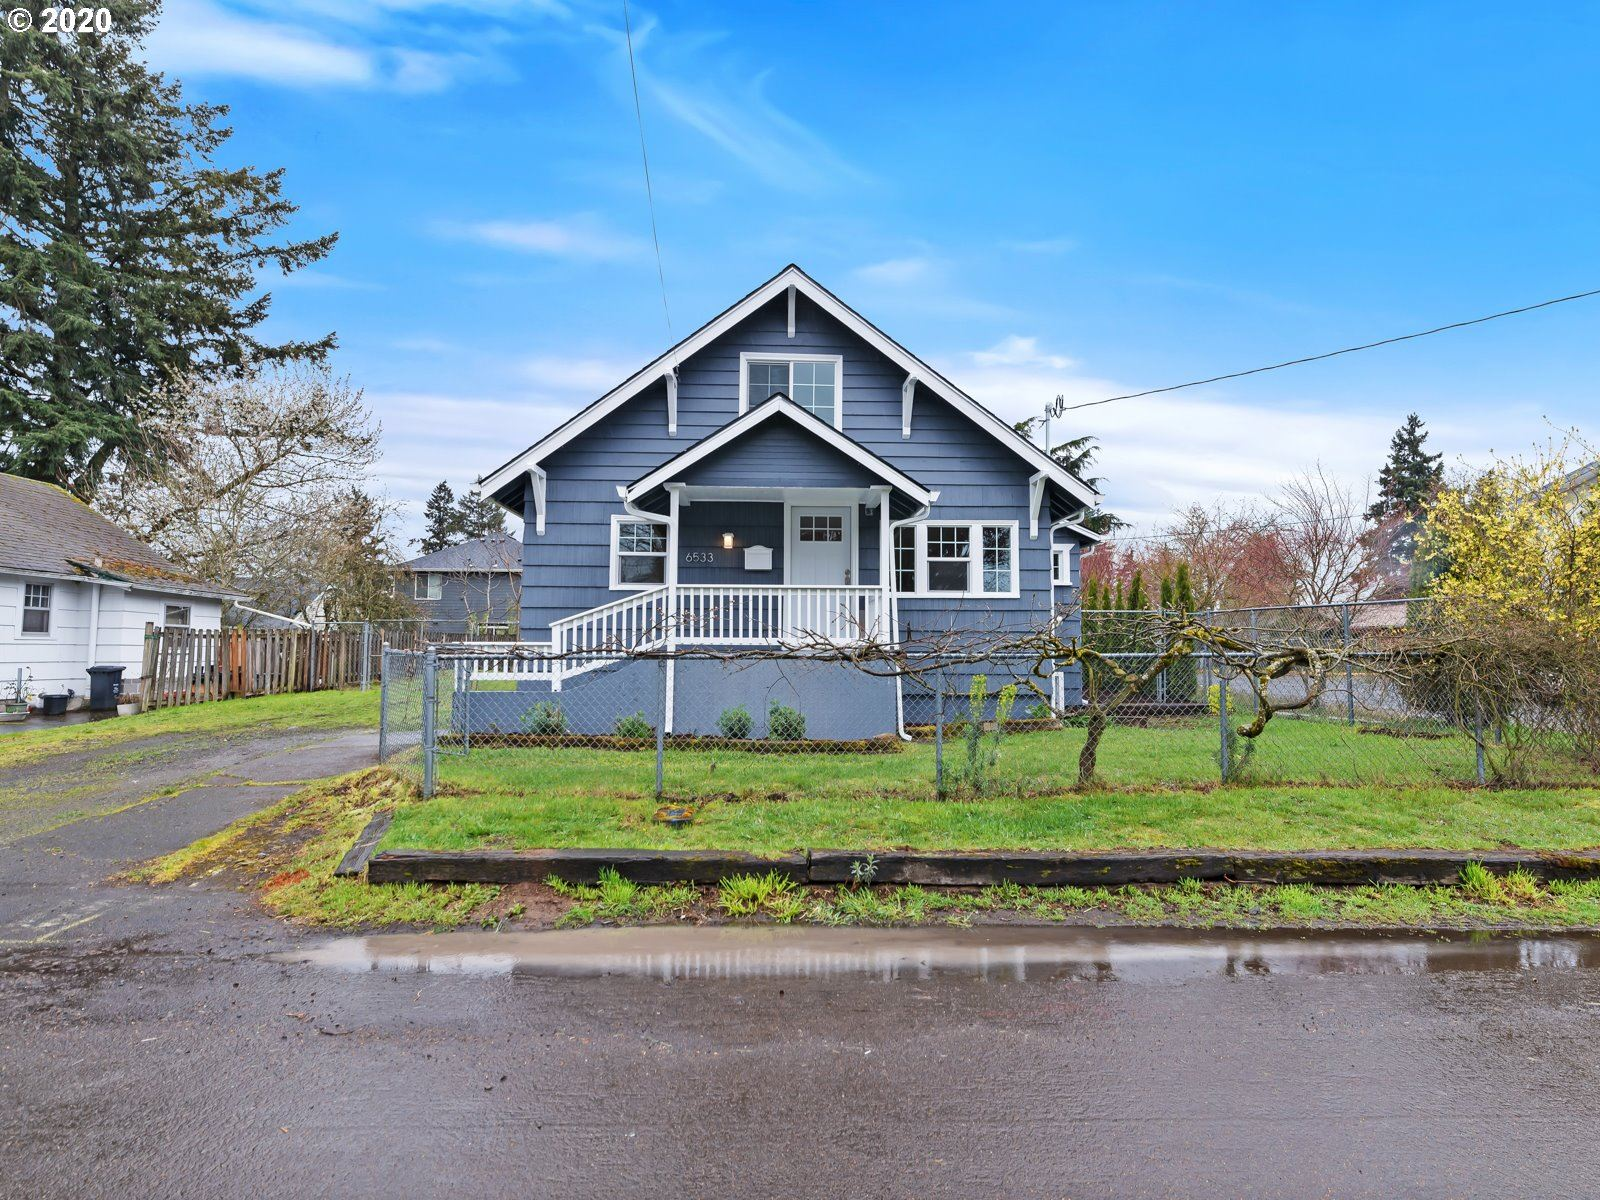 6533 SE 70TH AVE, Portland, OR 97206 - MLS#: 20533886